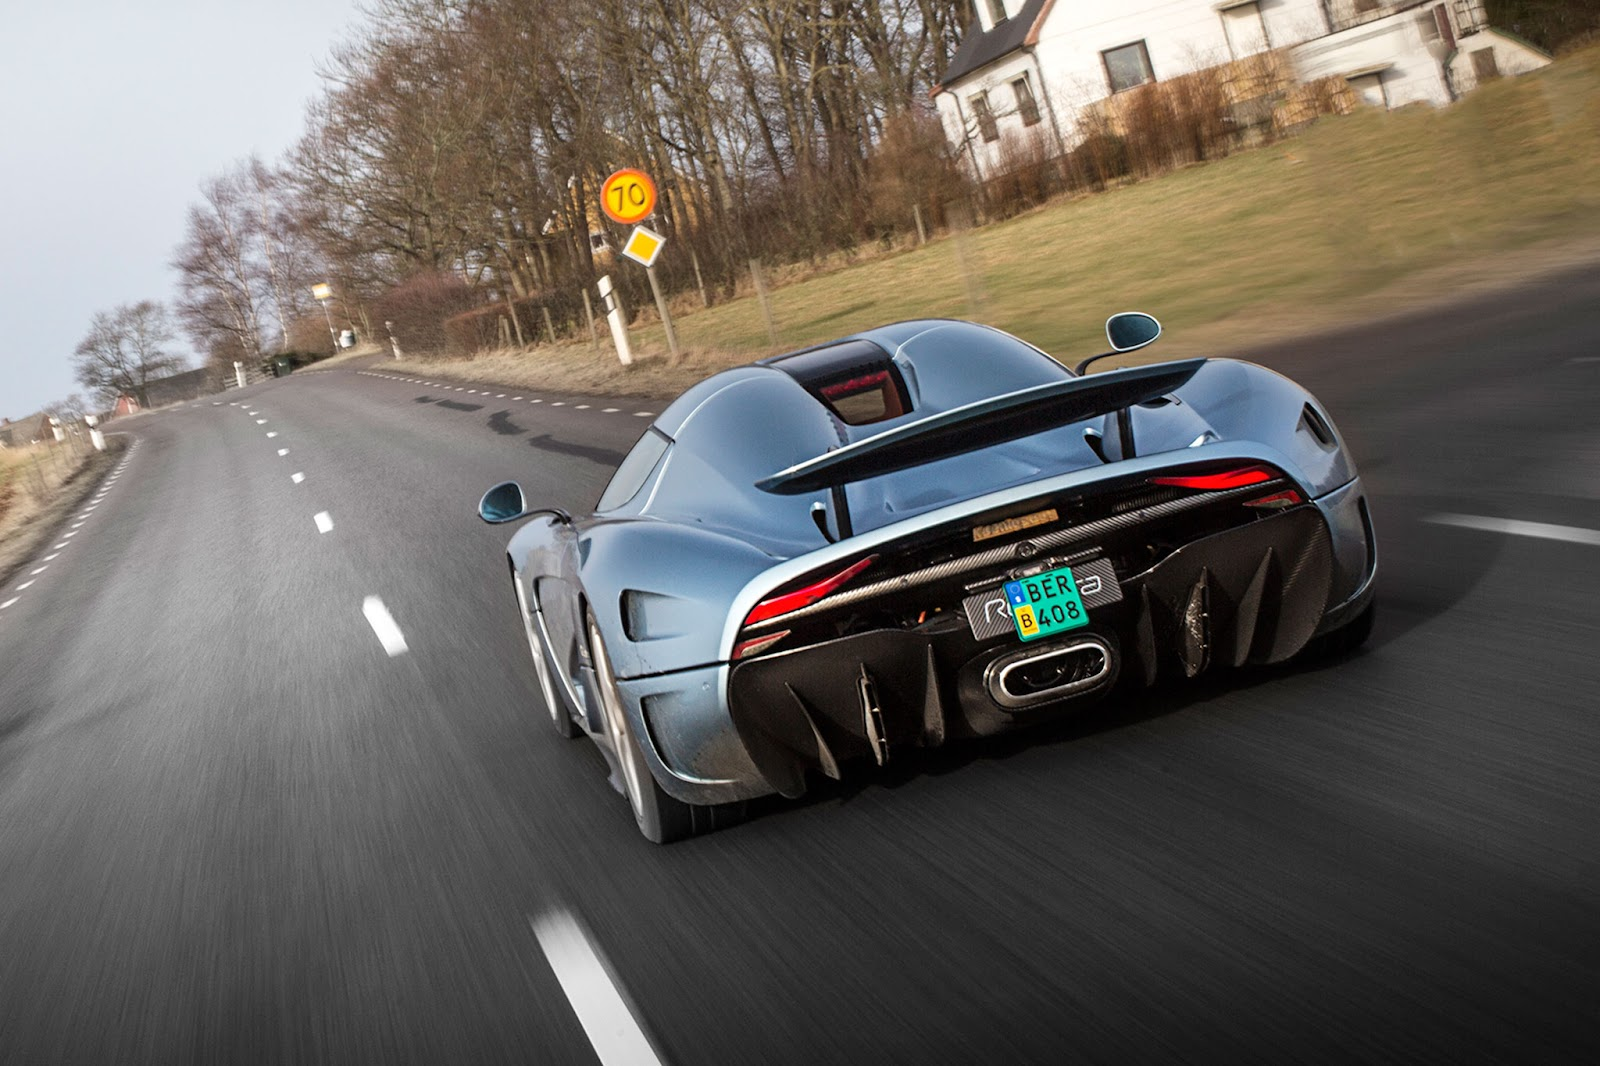 Koenigsegg-Regera-prototype-rear-view-in-motion-03.jpg